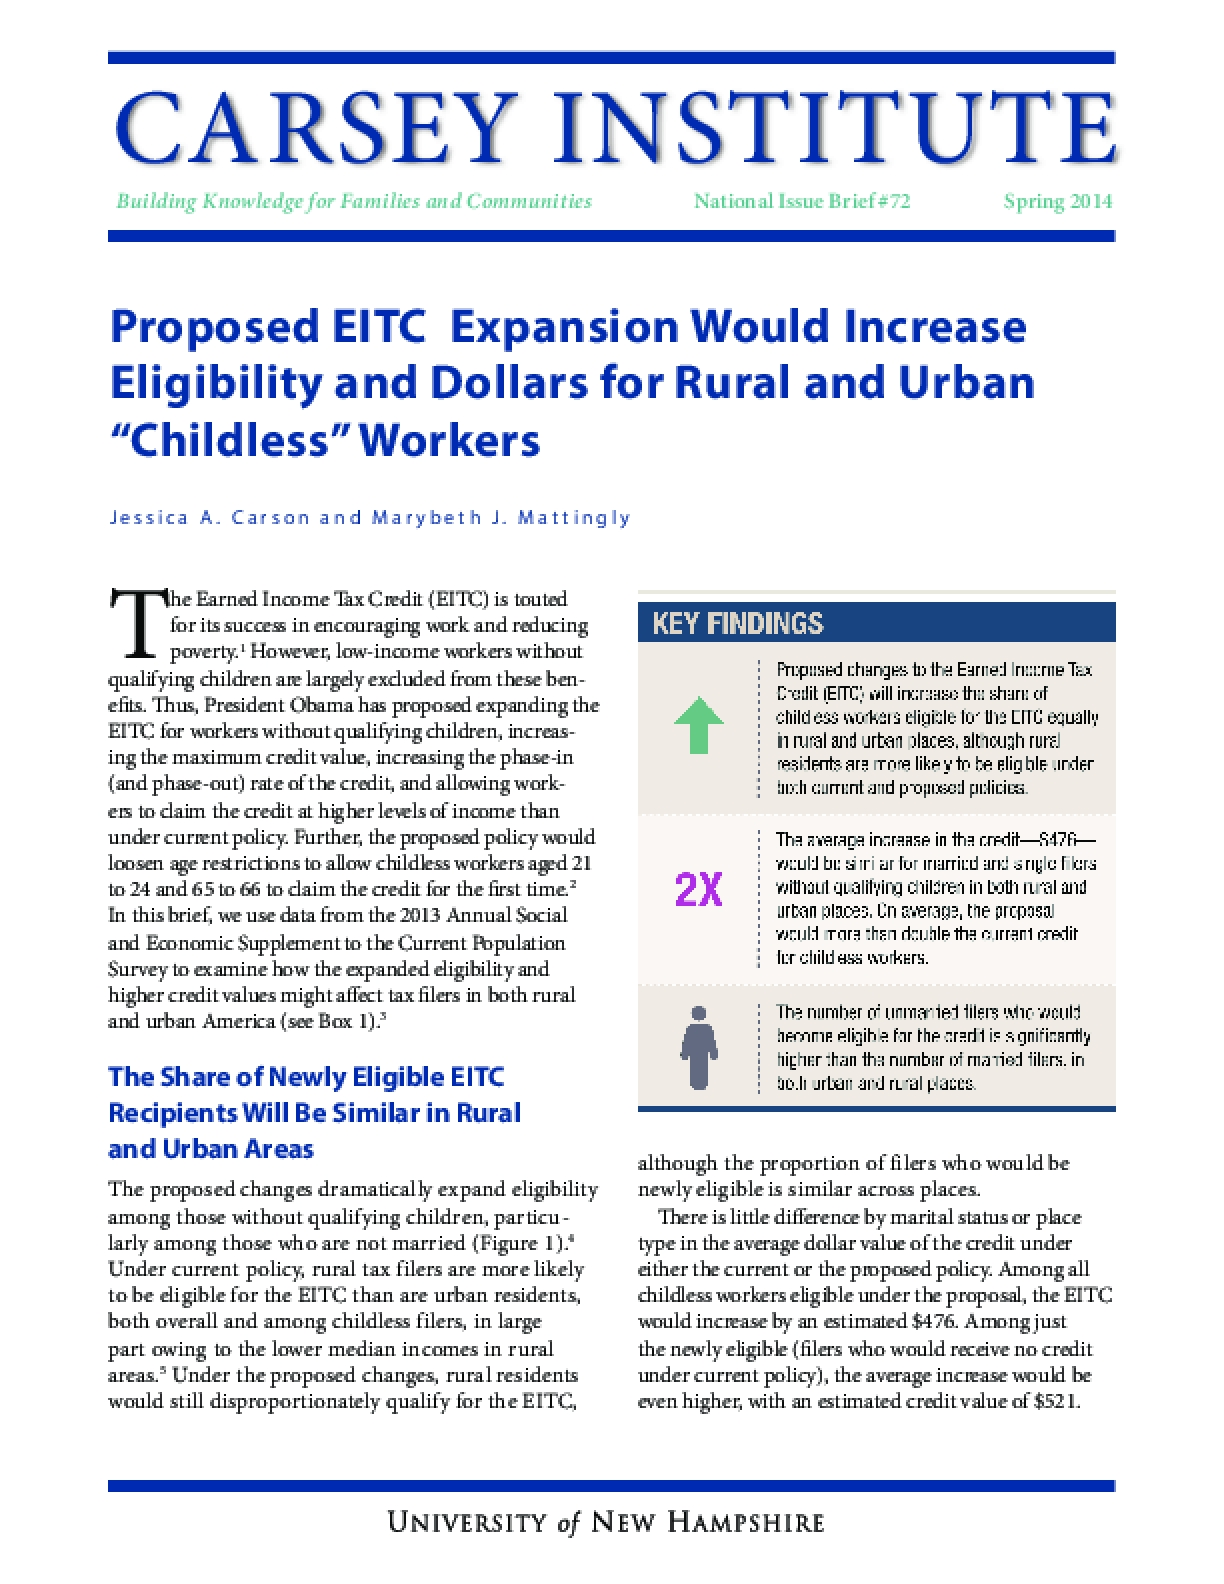 """Proposed EITC Expansion Would Increase Eligibility and Dollars for Rural and Urban """"Childless"""" Workers"""